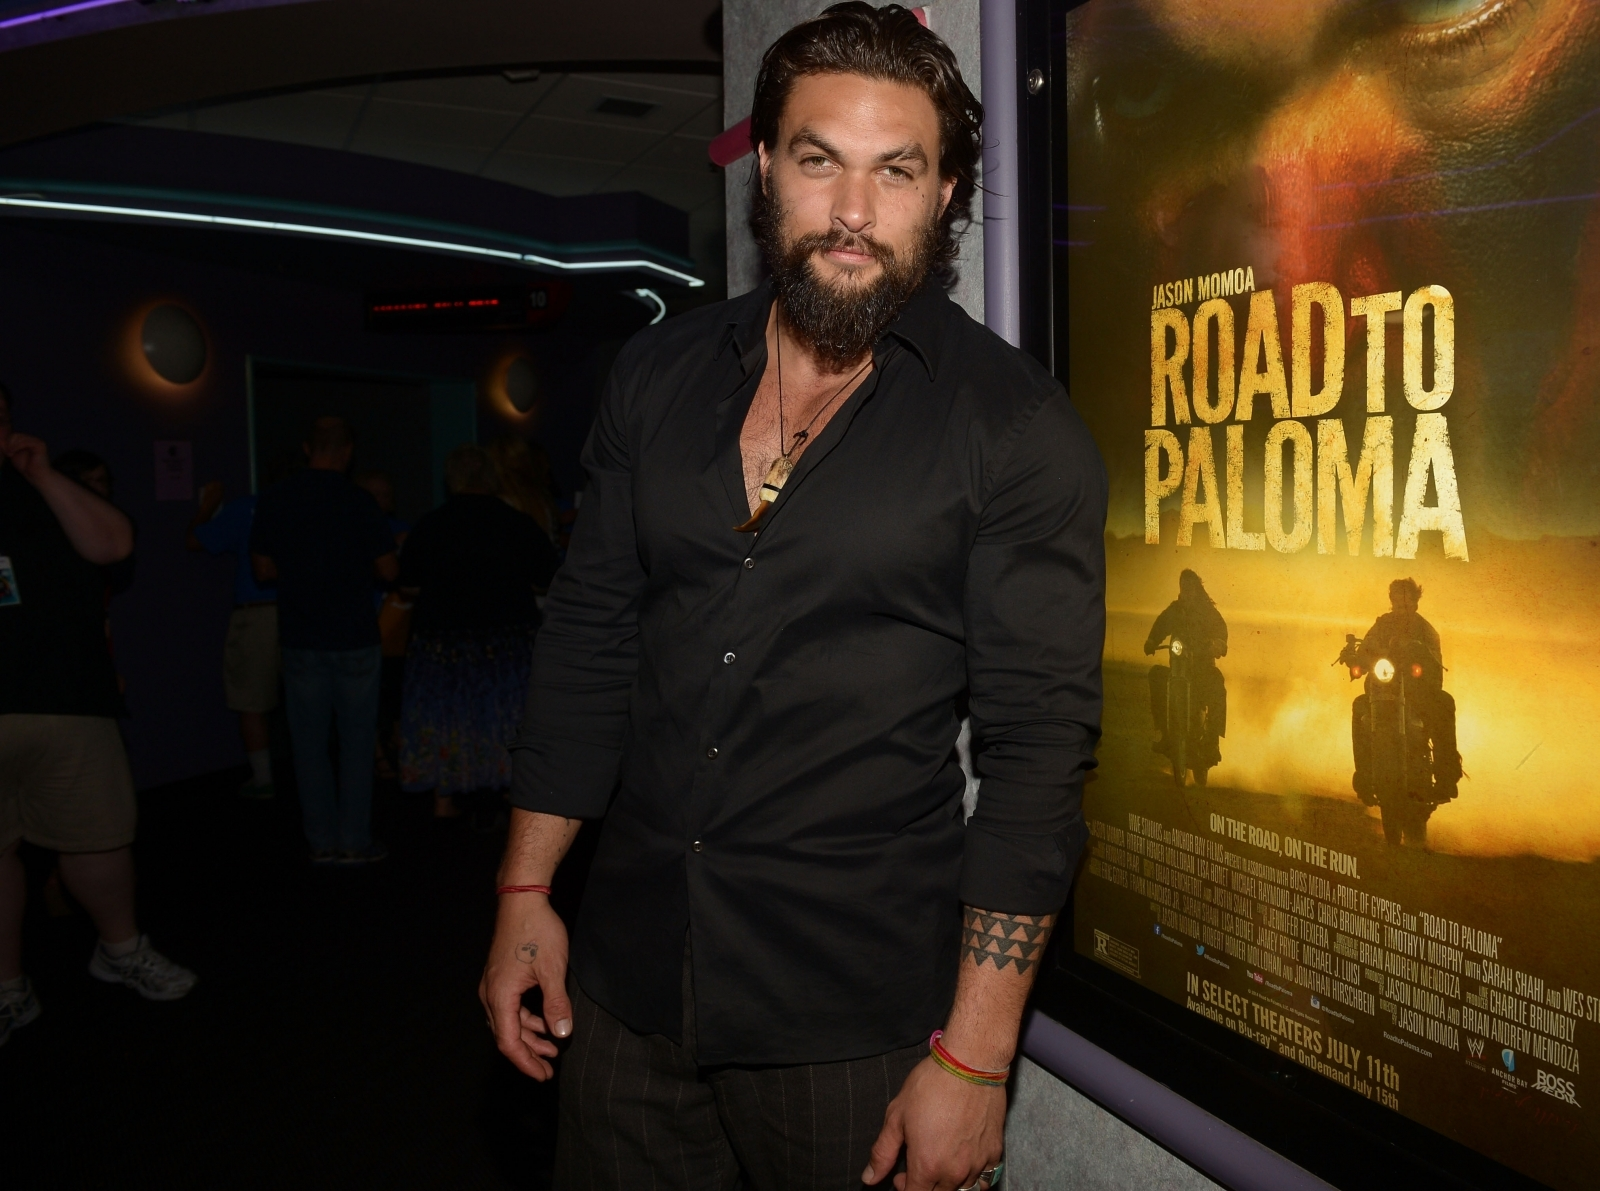 Debate erupts over resurfaced video of Jason Momoa making a rape joke